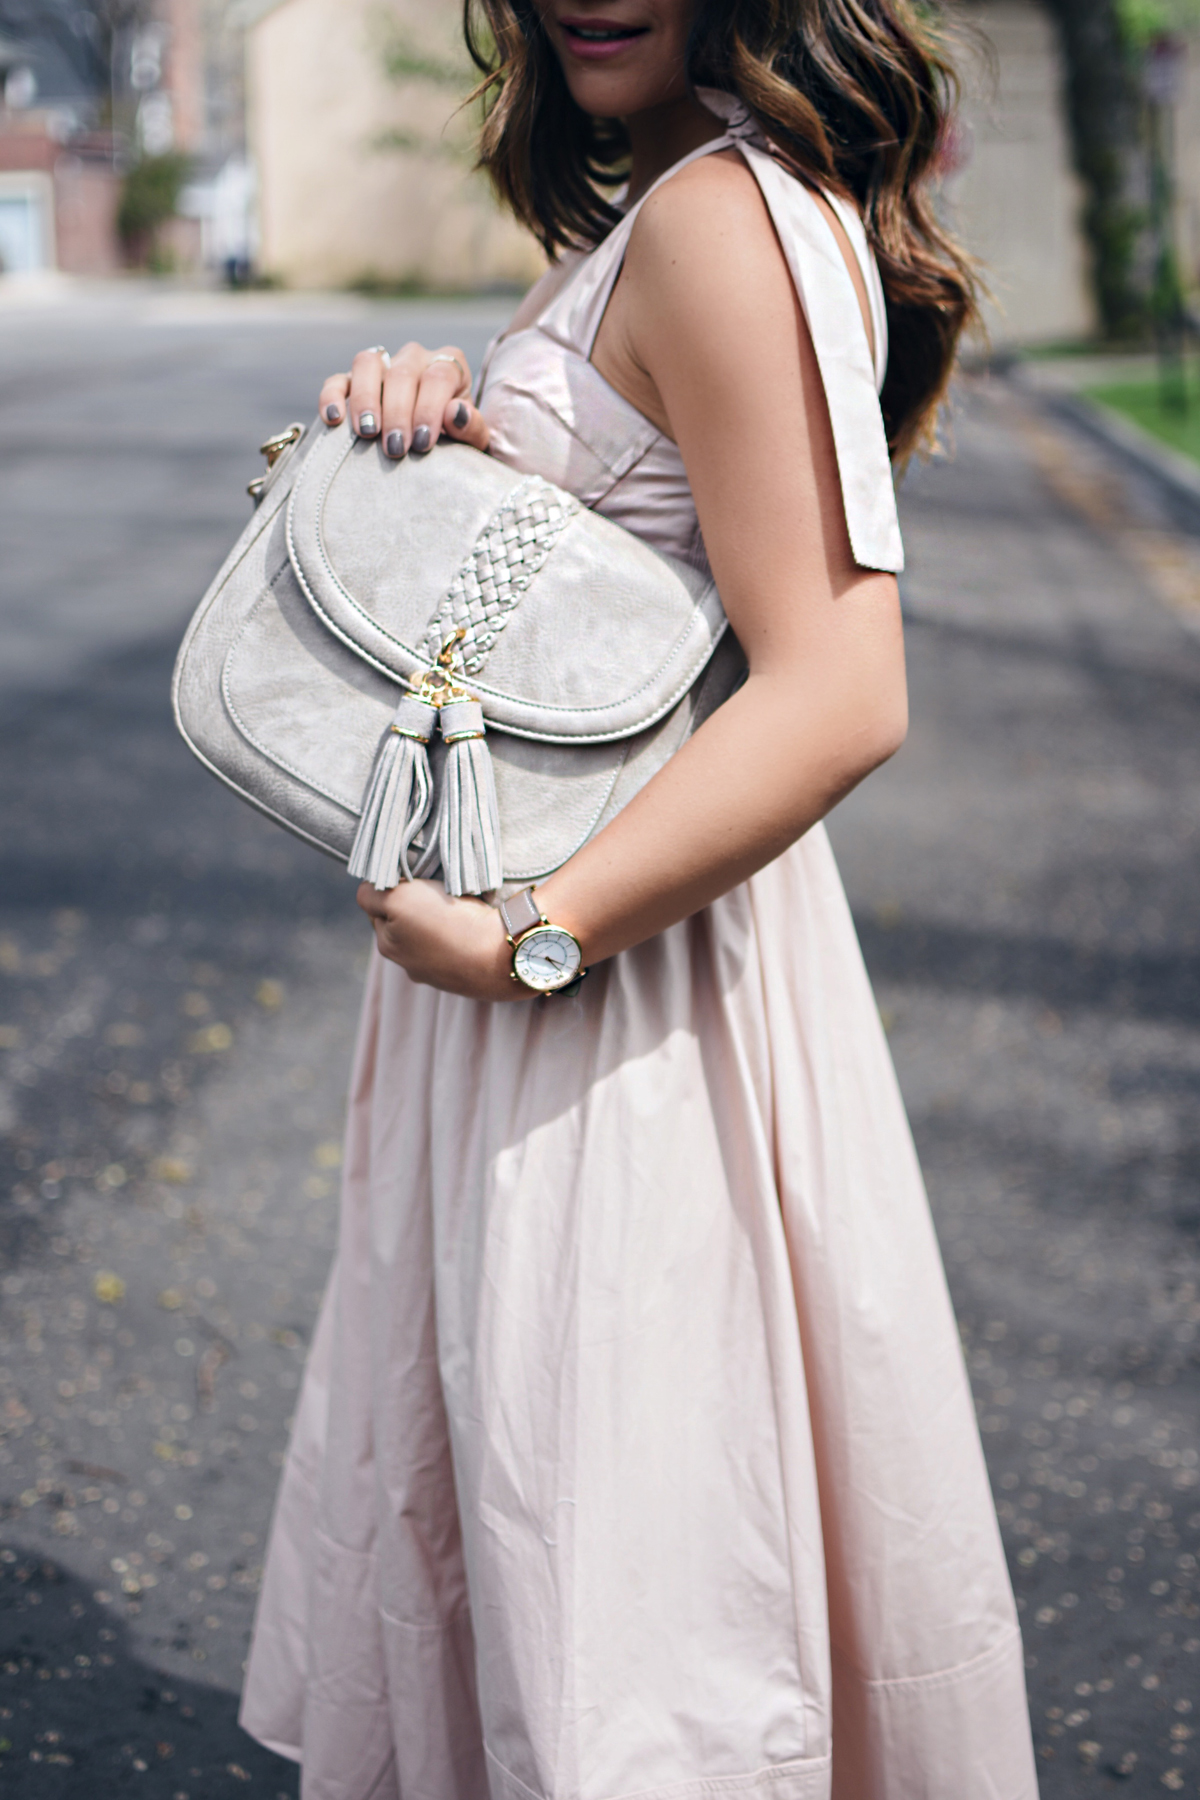 Carolina Hellal of Chic Talk wearing Chicwish blush A lines dress, Steve Madden ankle strap sandals and Moda Luxe bag